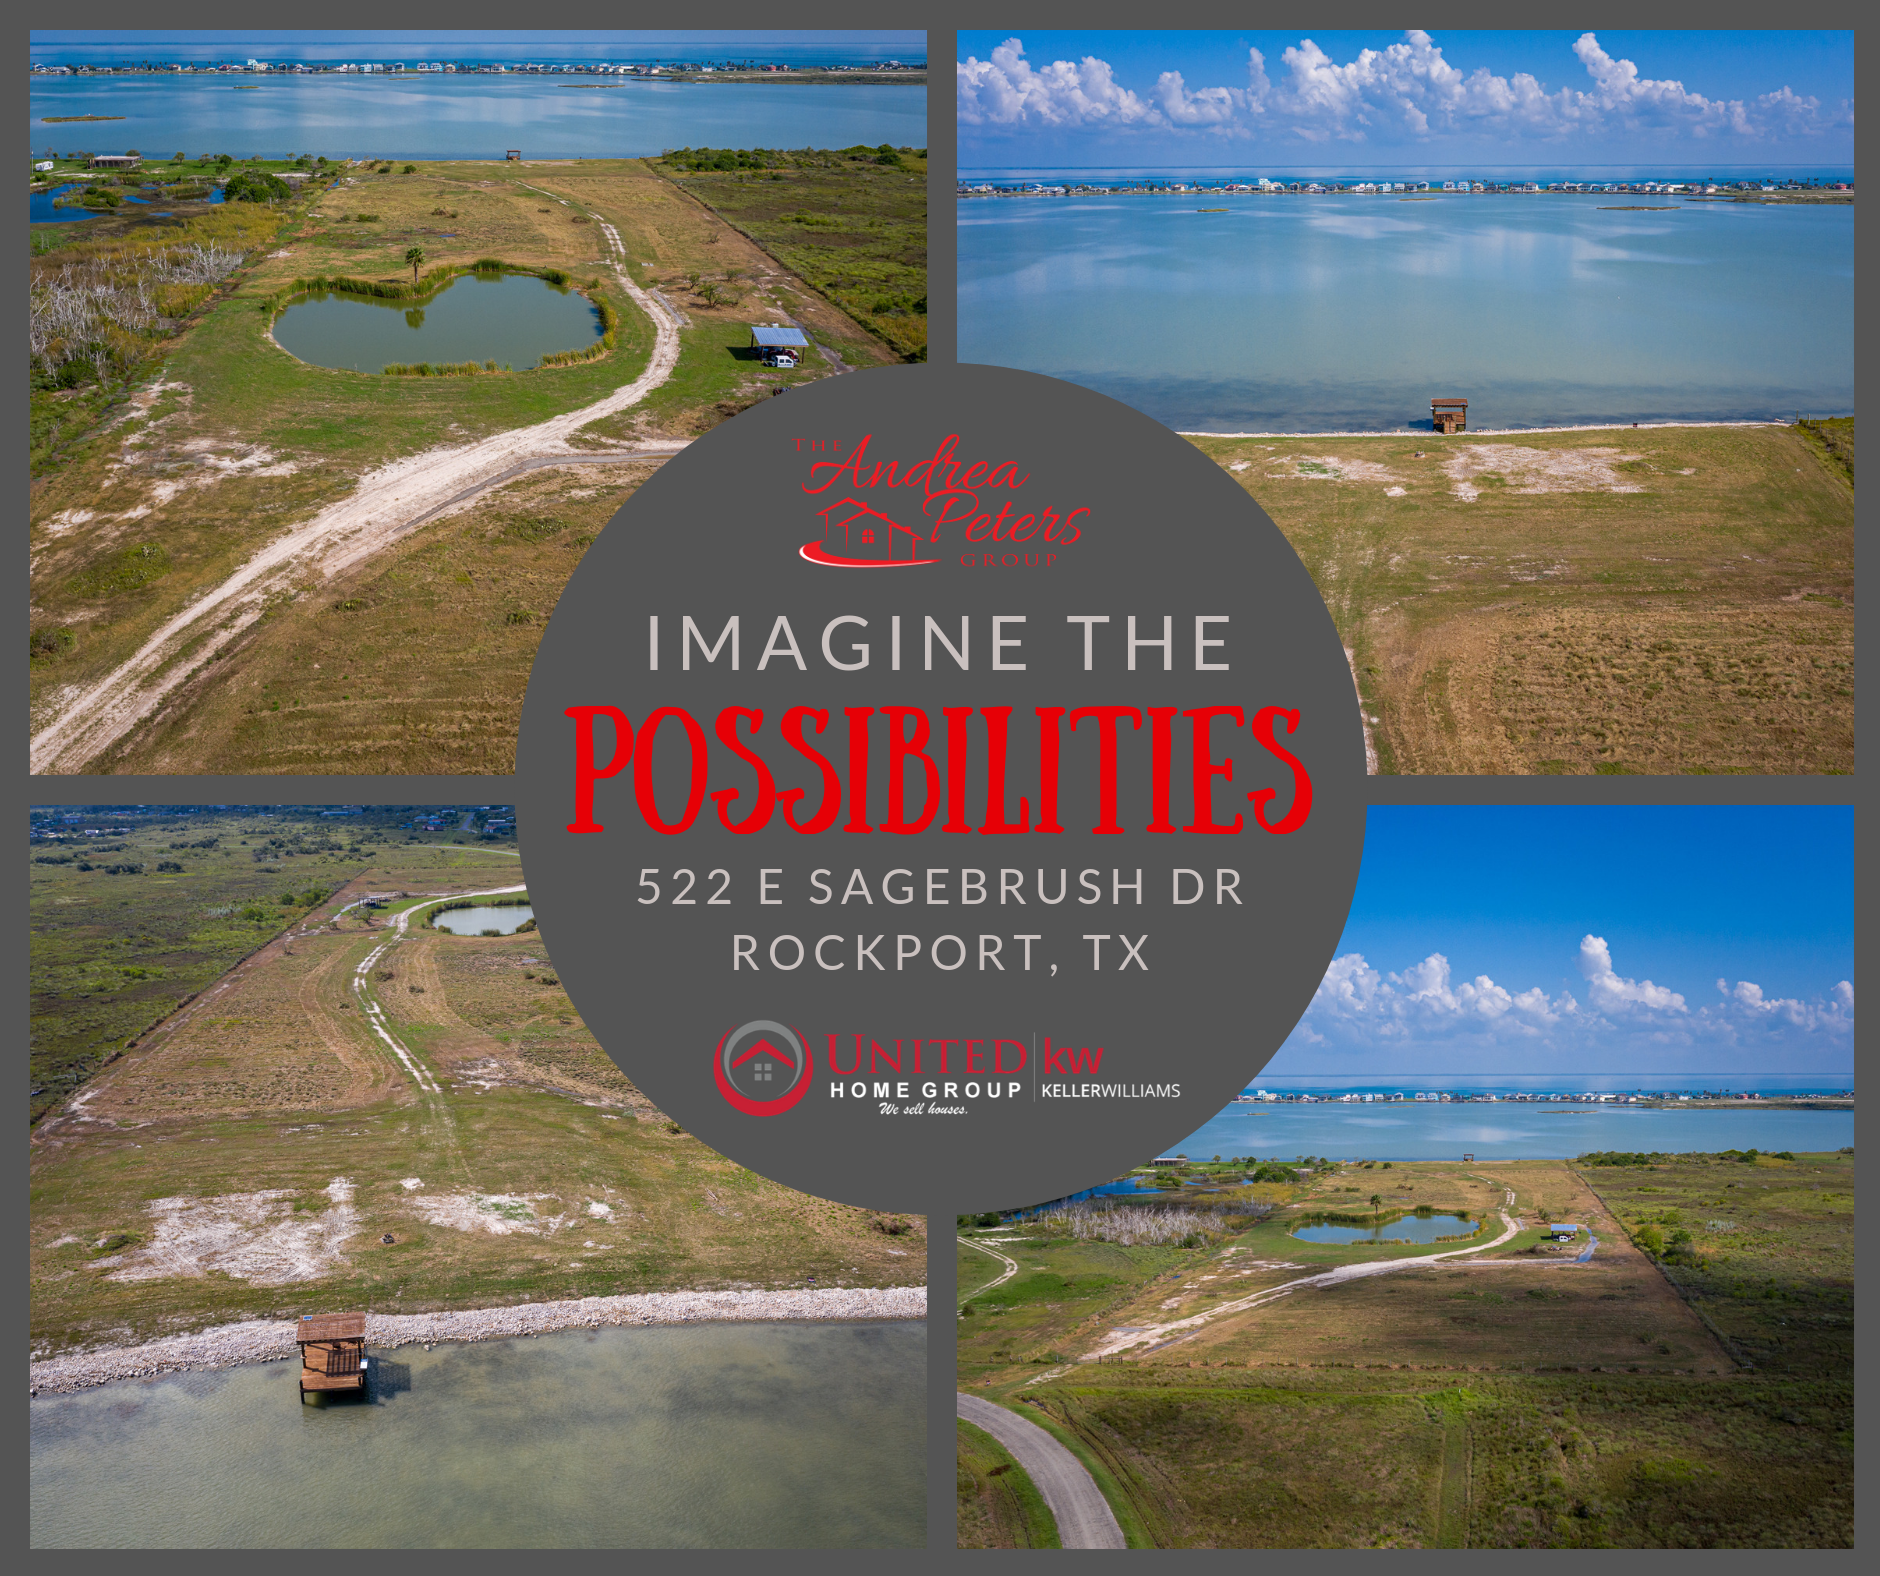 JUST LISTED | 522 E Sagebrush Dr, Rockport, TX 78382